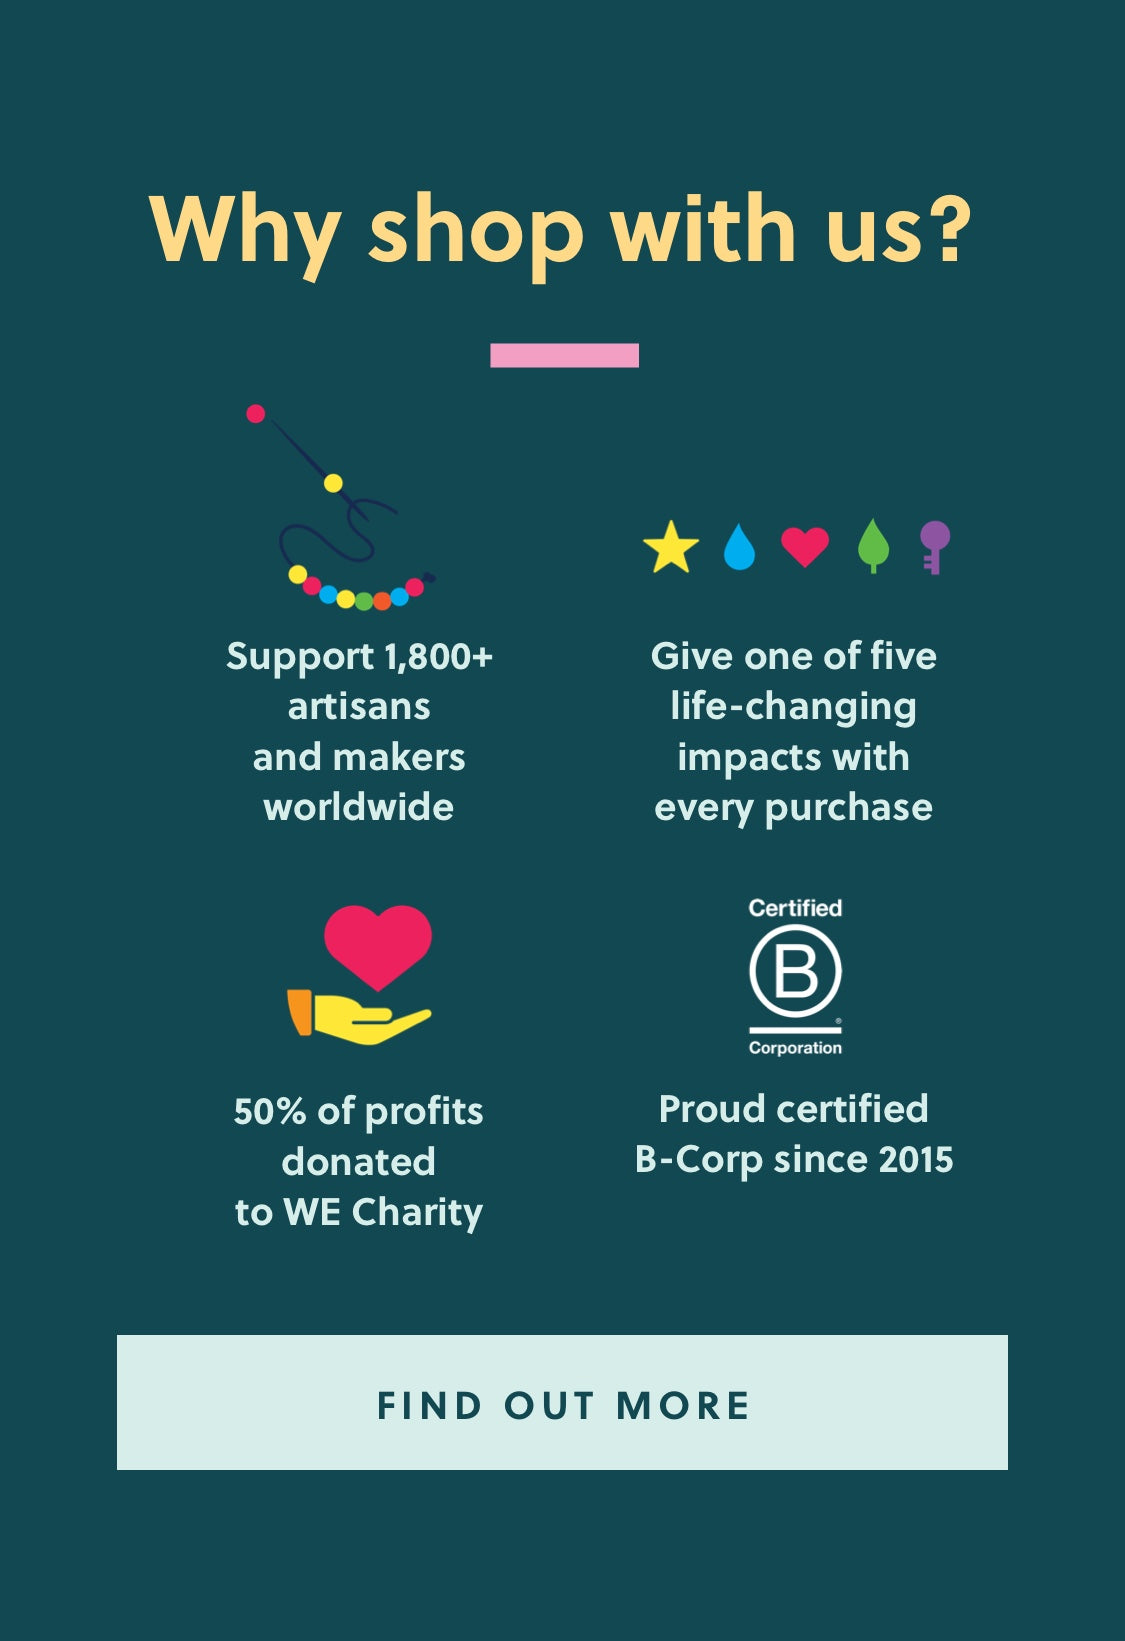 Why shop with us? | Support 1,800+ artisans  and makers worldwide | Give one of five life-changing  impacts with every purchase | 50% of profits at minimum  are donated to WE Charity | Proud certified  B-Corp since 2015.